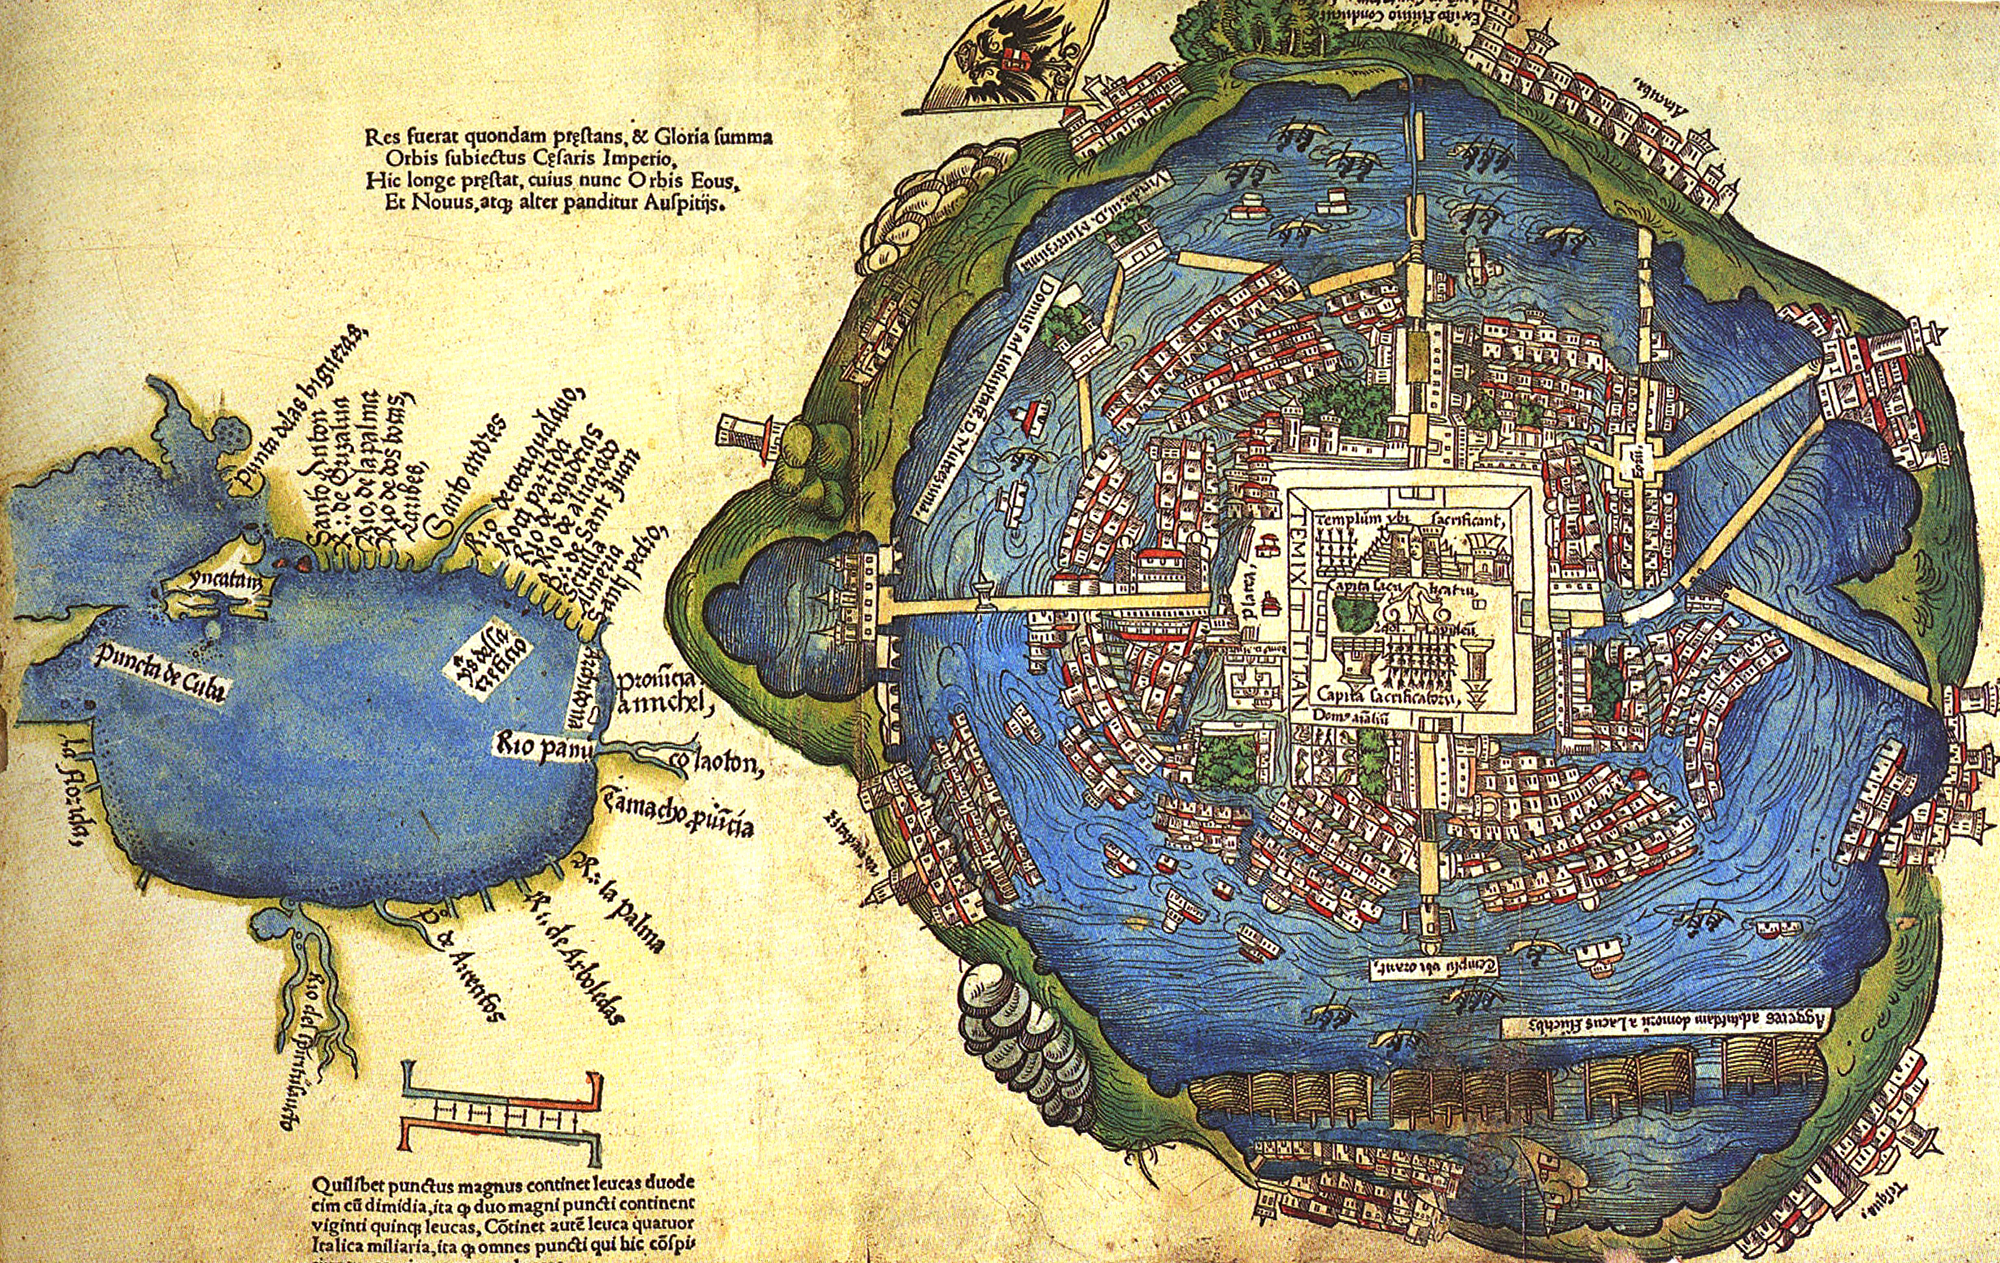 this sixteenth century map of tenochlan shows the aesthetic beauty and advanced infrastructure of this